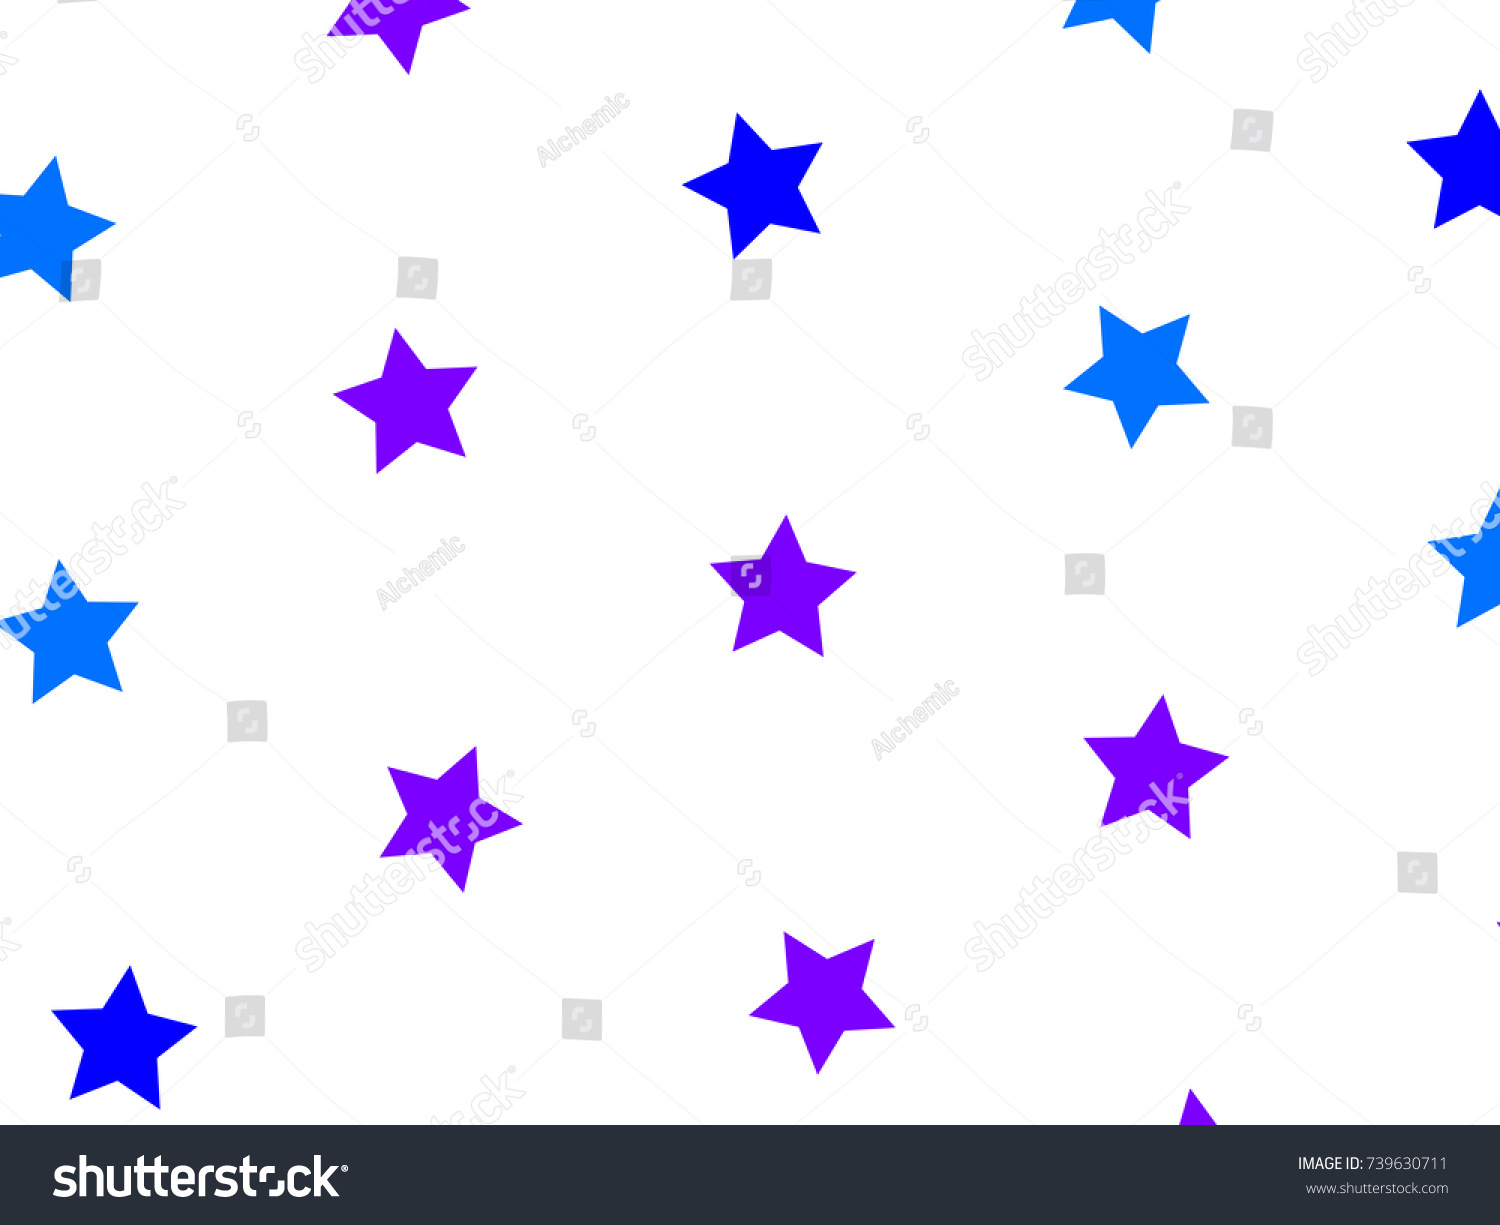 Star Template Based On Multiple Elements Stock Illustration